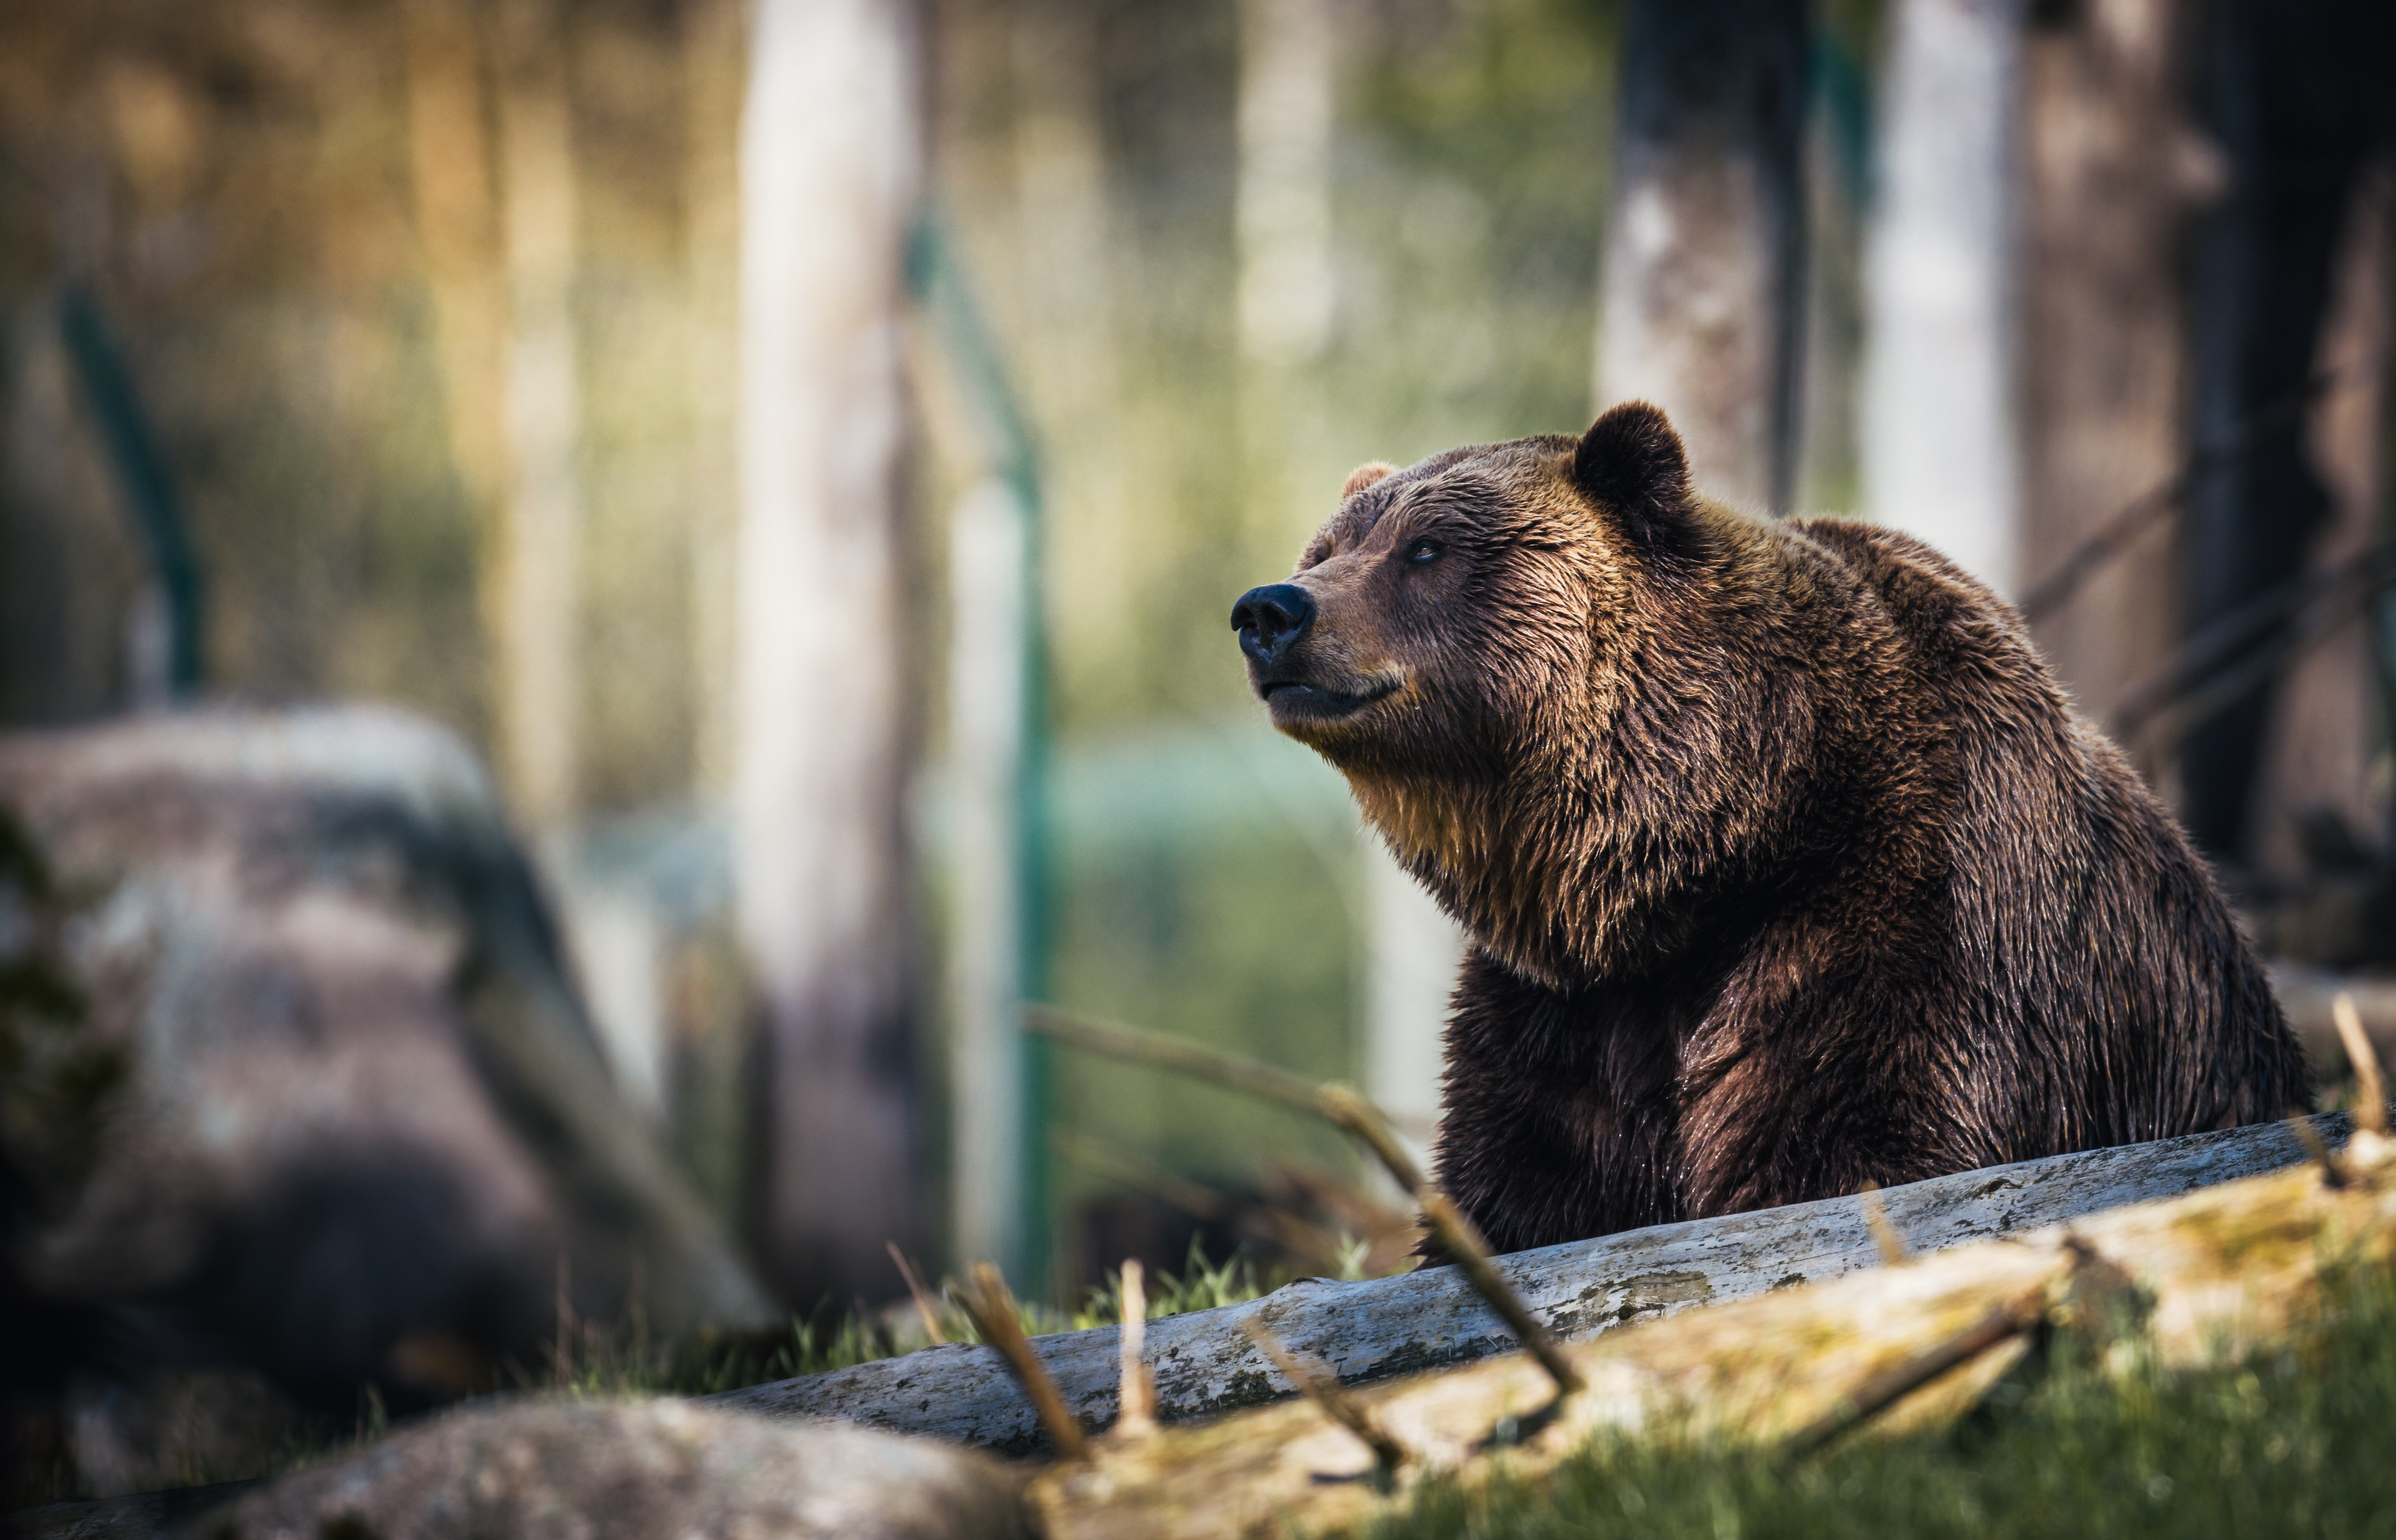 A grizzly bear can be seen in between branches | Photo: Pexels/Janko Ferlic